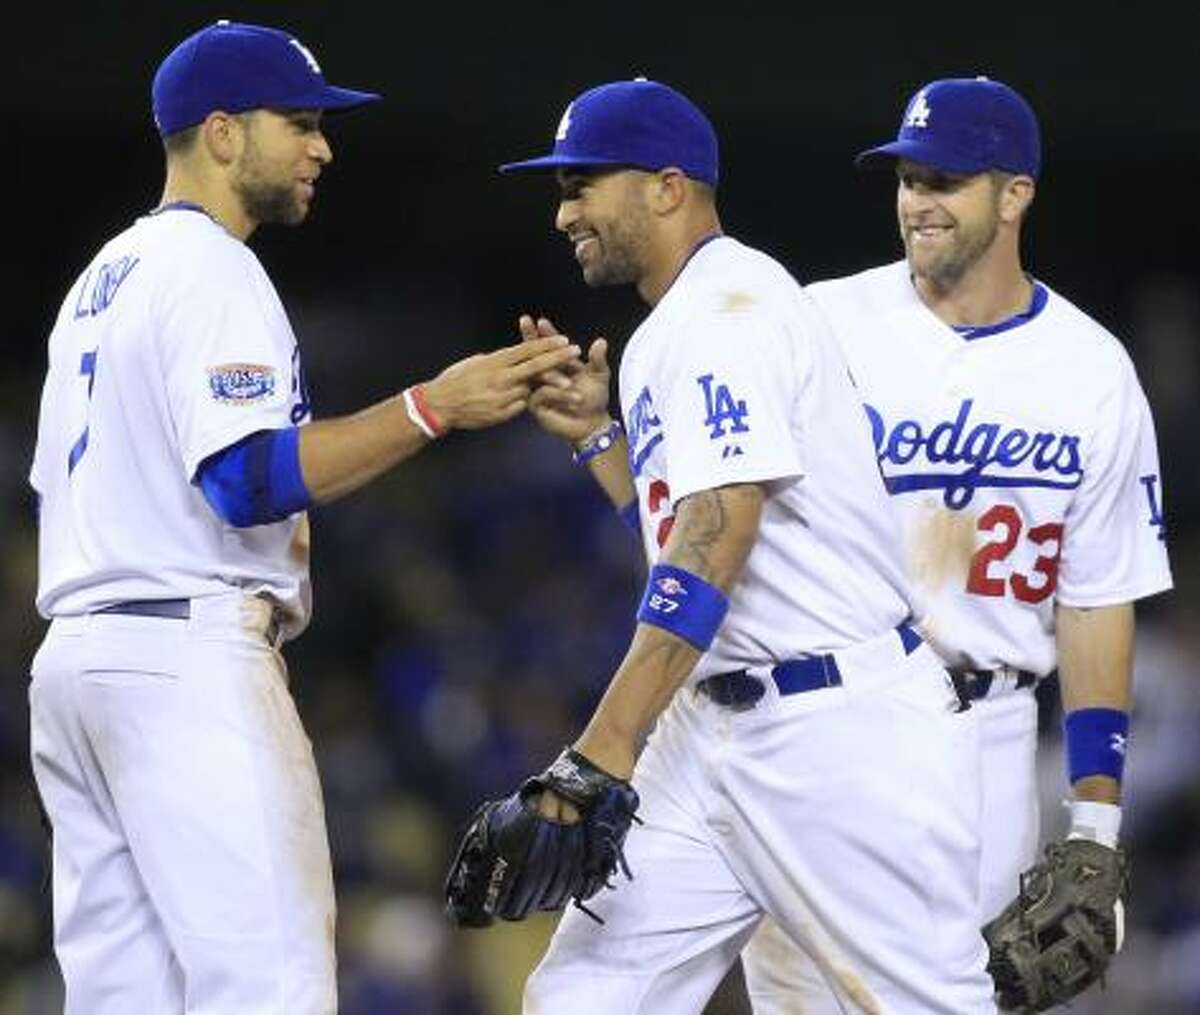 Dodgers' James Loney, left, Matt Kemp, center, and Casey Blake, right, celebrate after the Dodgers defeated the Astros 7-3.